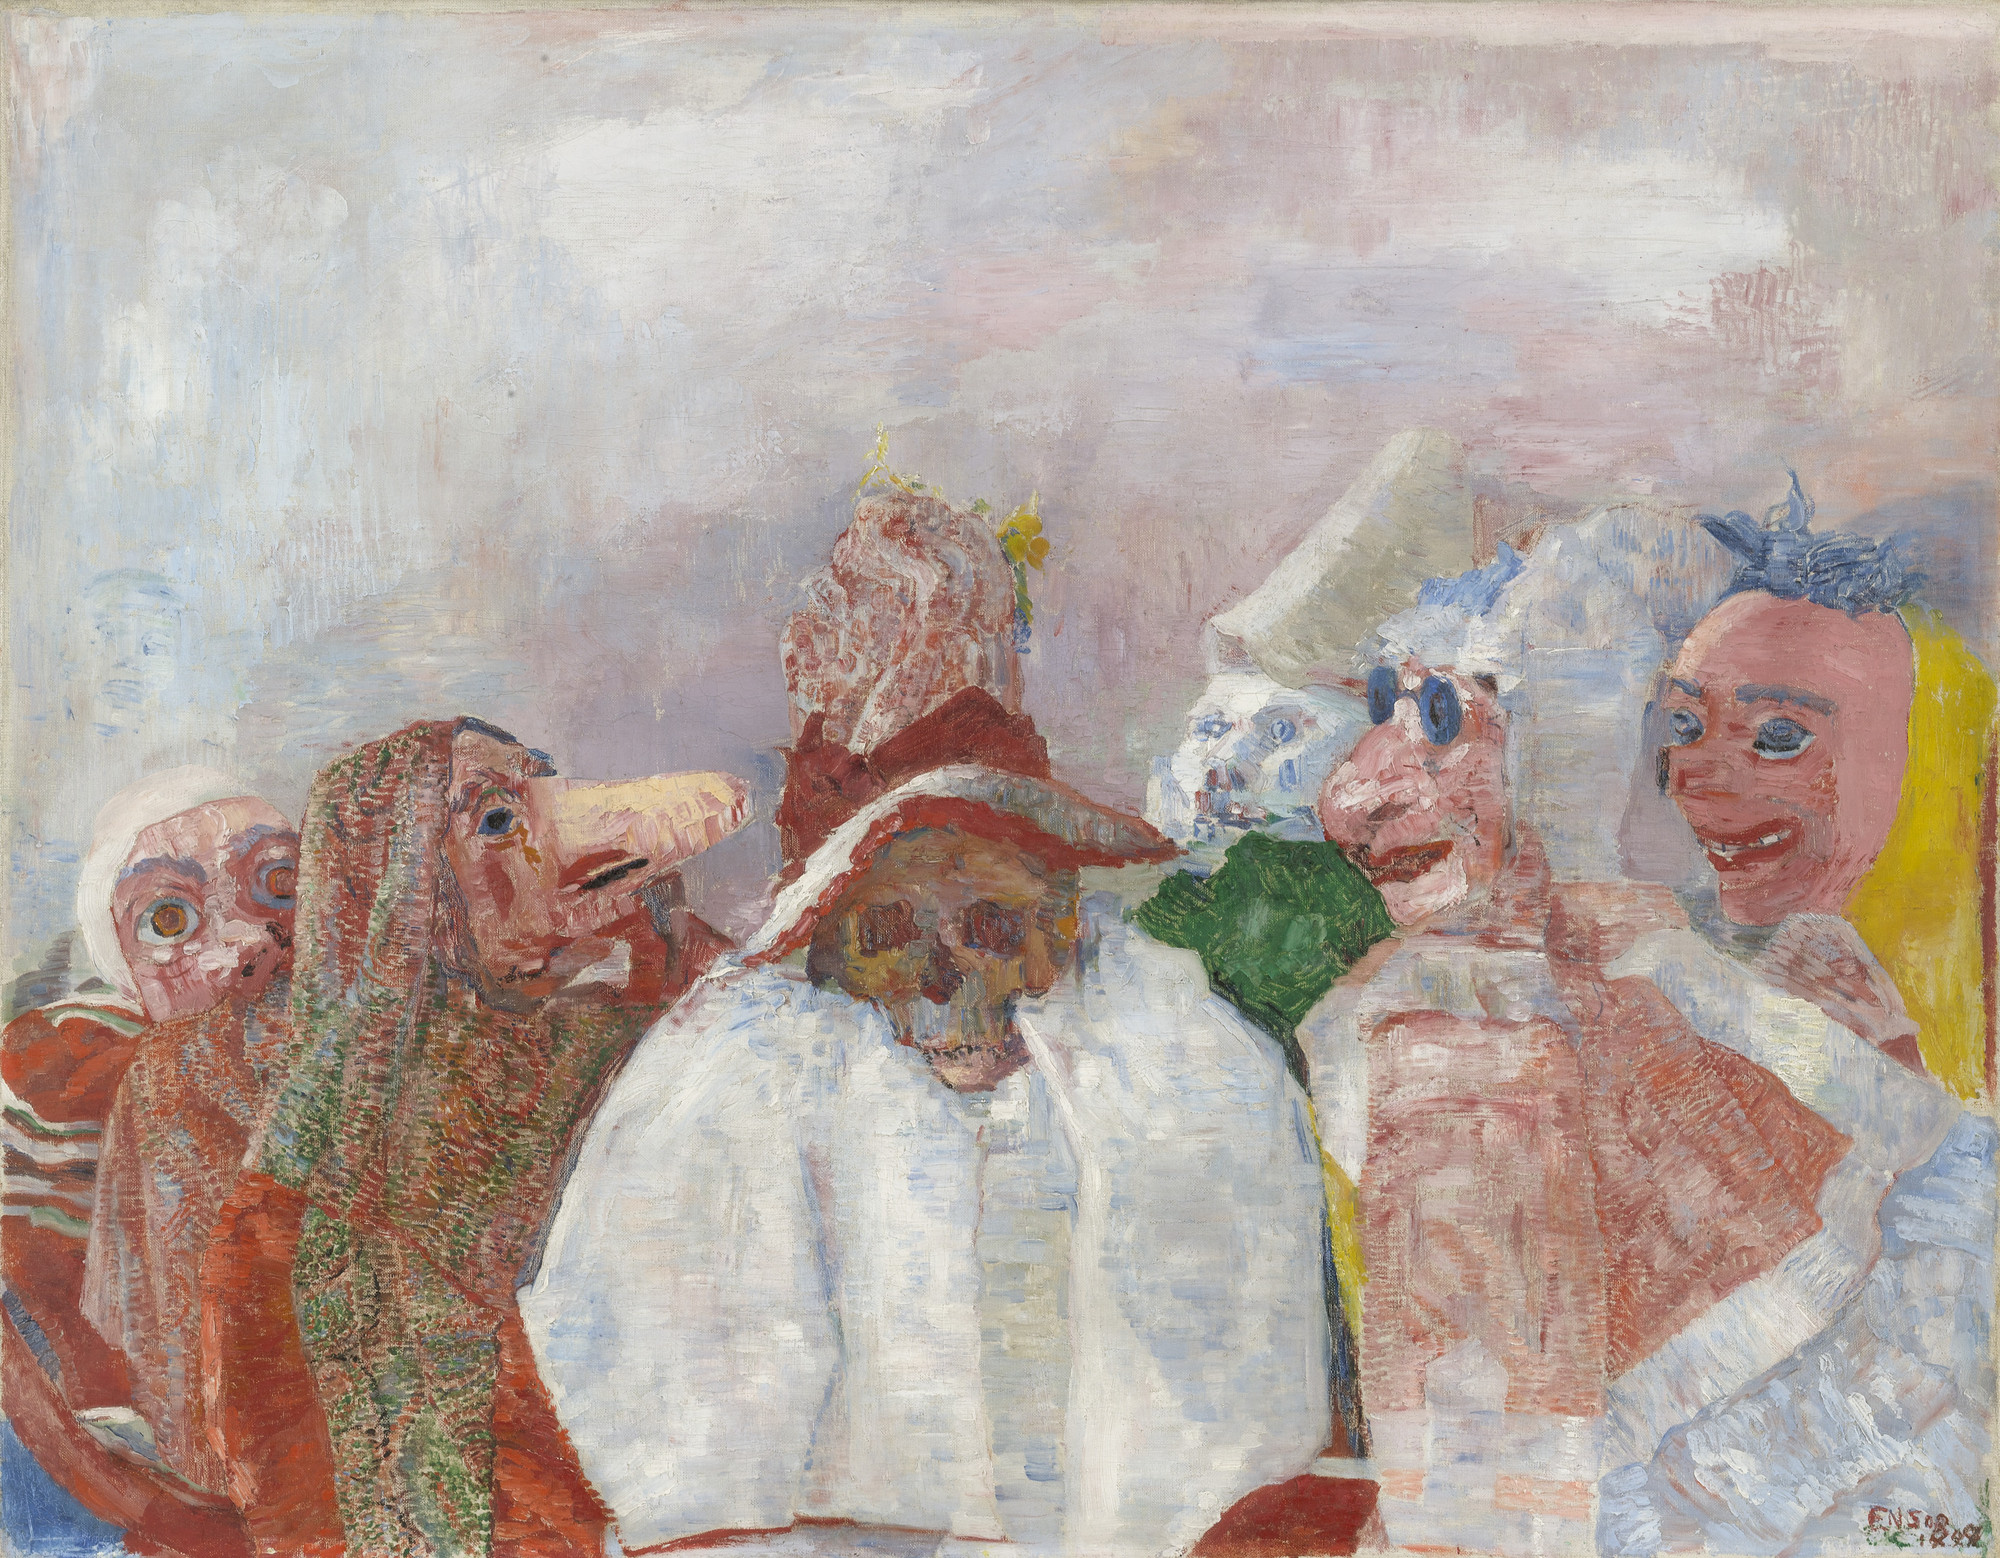 תוצאת תמונה עבור ‪James Ensor, Masks mocking death, 1888‬‏